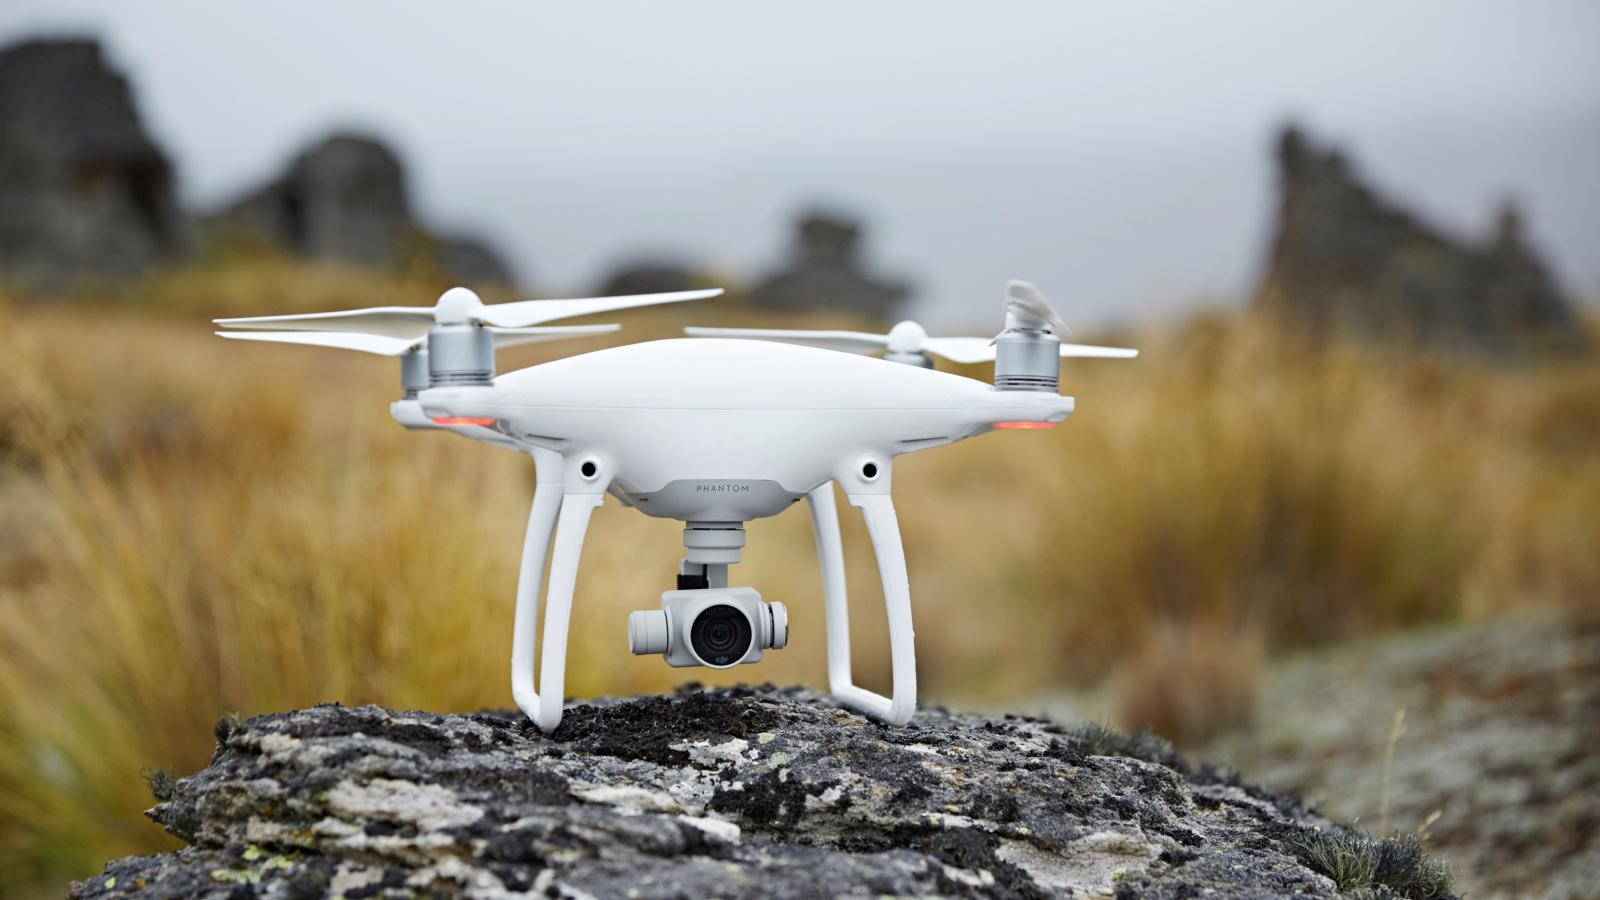 Review Djis Phantom 4 Is So Close To Being The Drone For Everyone Of Beginners Guide Connecting Your Rc Plane Electronic Parts But Its Not Quite There Quartz